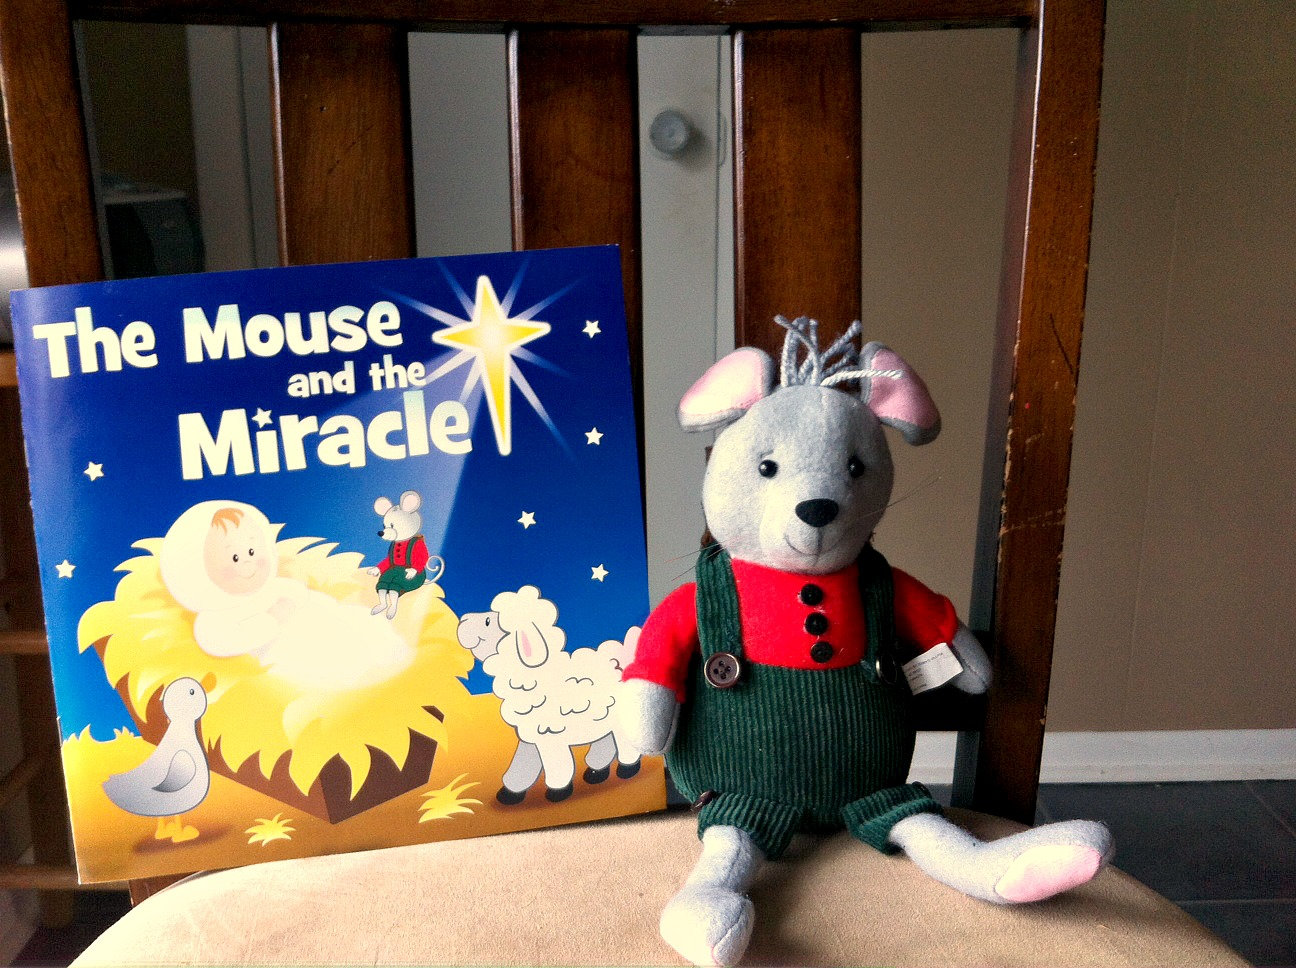 The Mouse and the Miracle from Oriental Trading